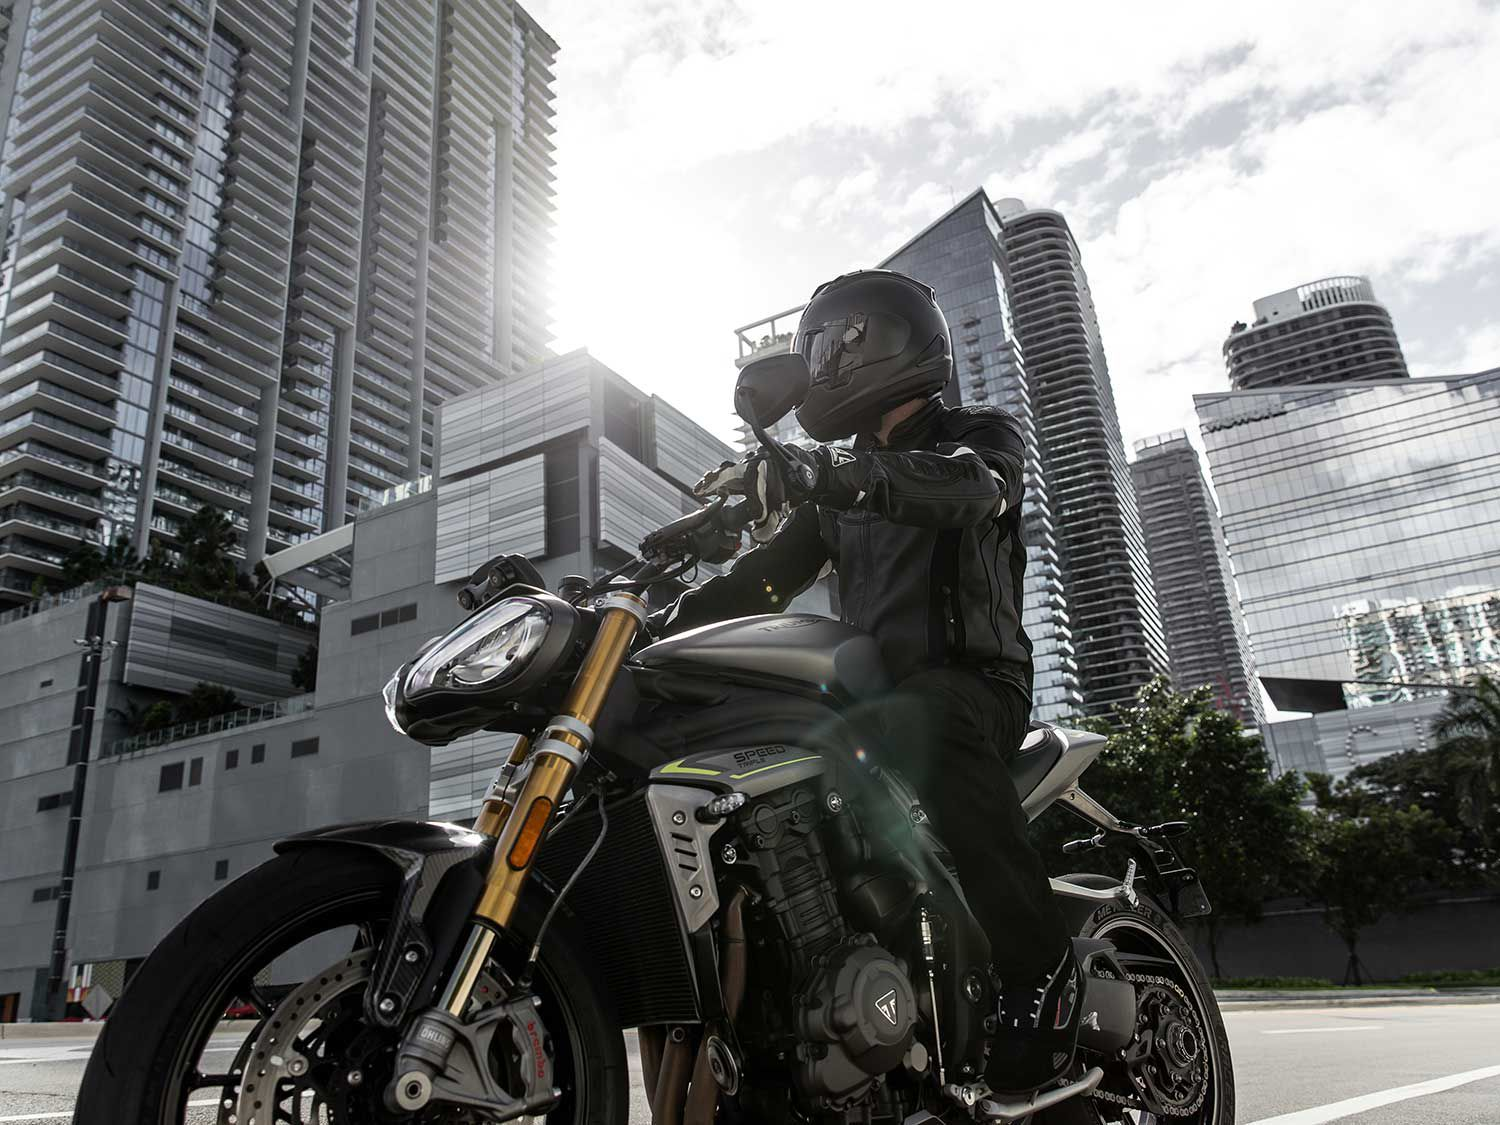 A big step forward for the Speed Triple.